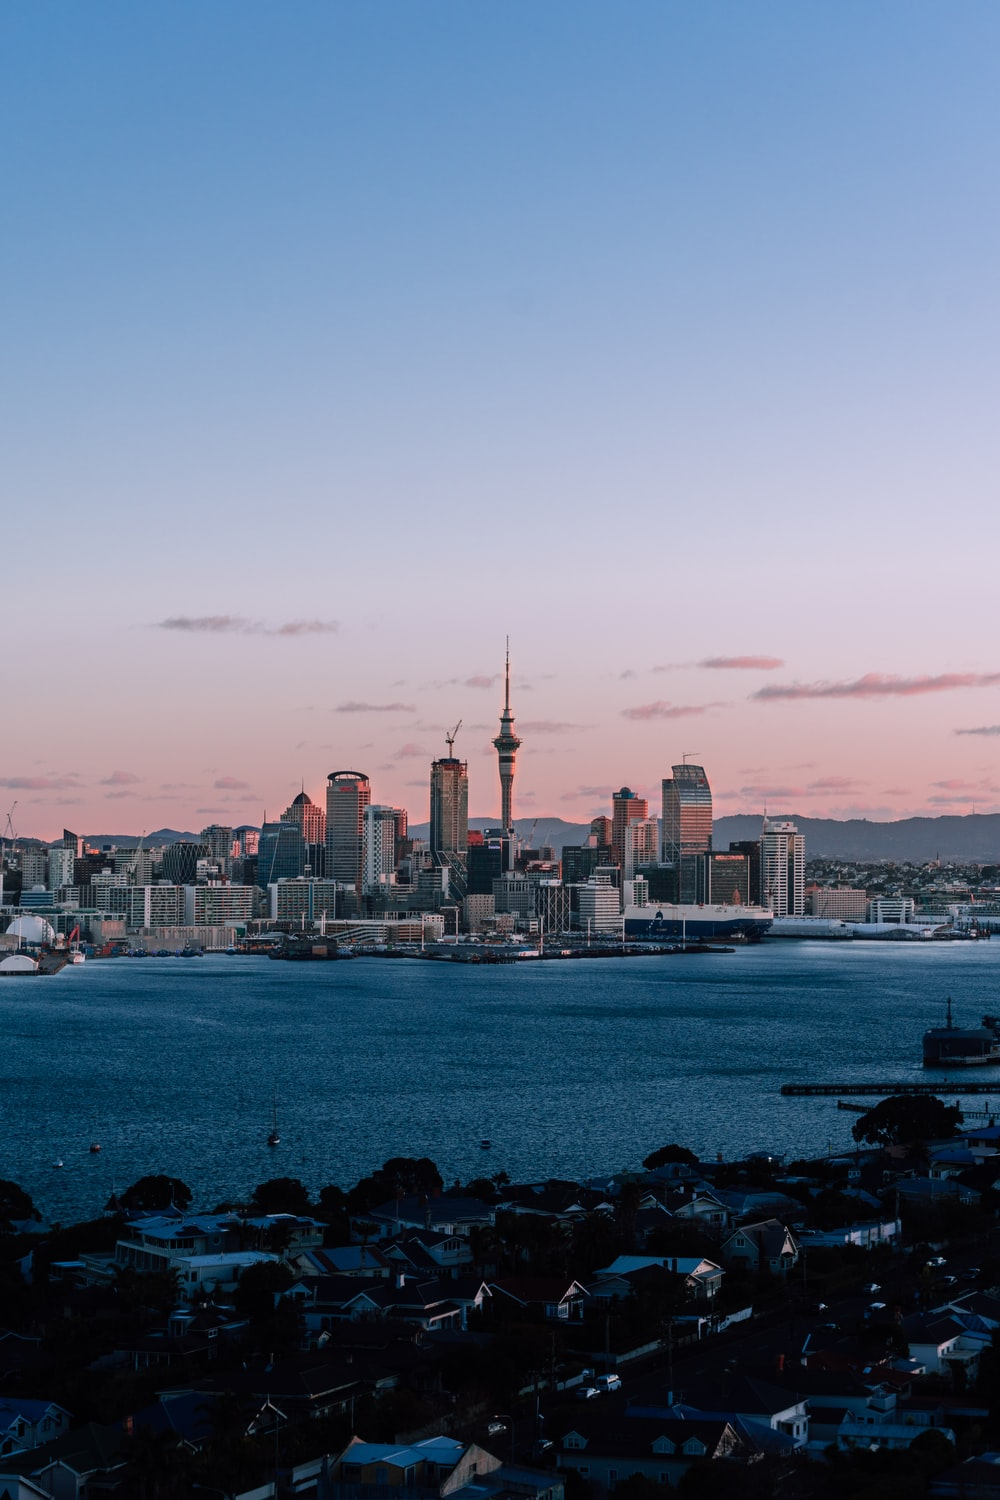 Auckland New Zealand Pictures Download Free Images On Unsplash New zealand city buildings sea clouds